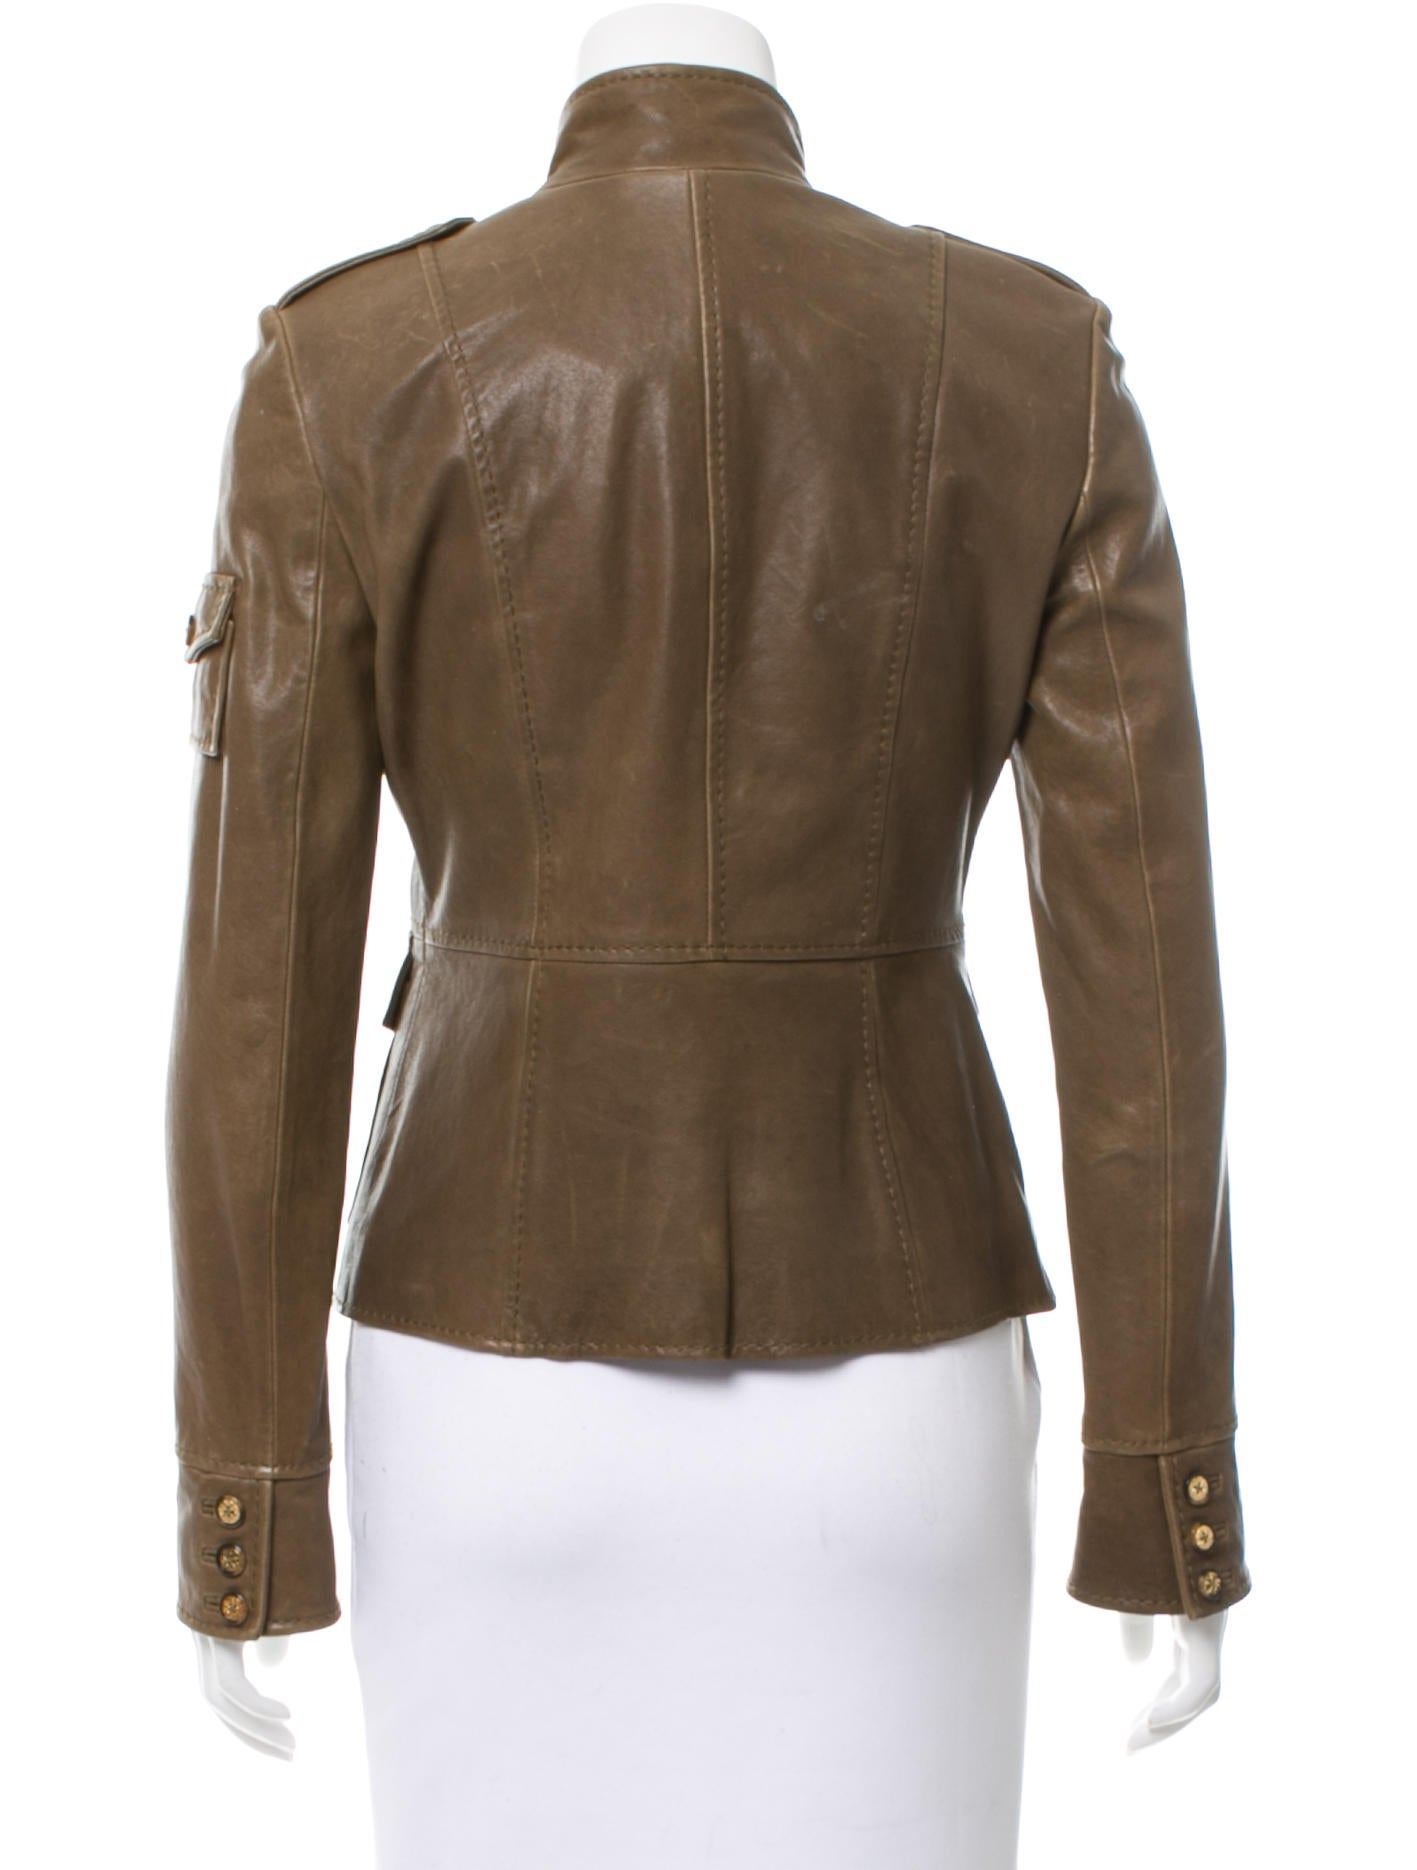 Tory Burch Leather Button-Up Jacket - Clothing - WTO88918 ...